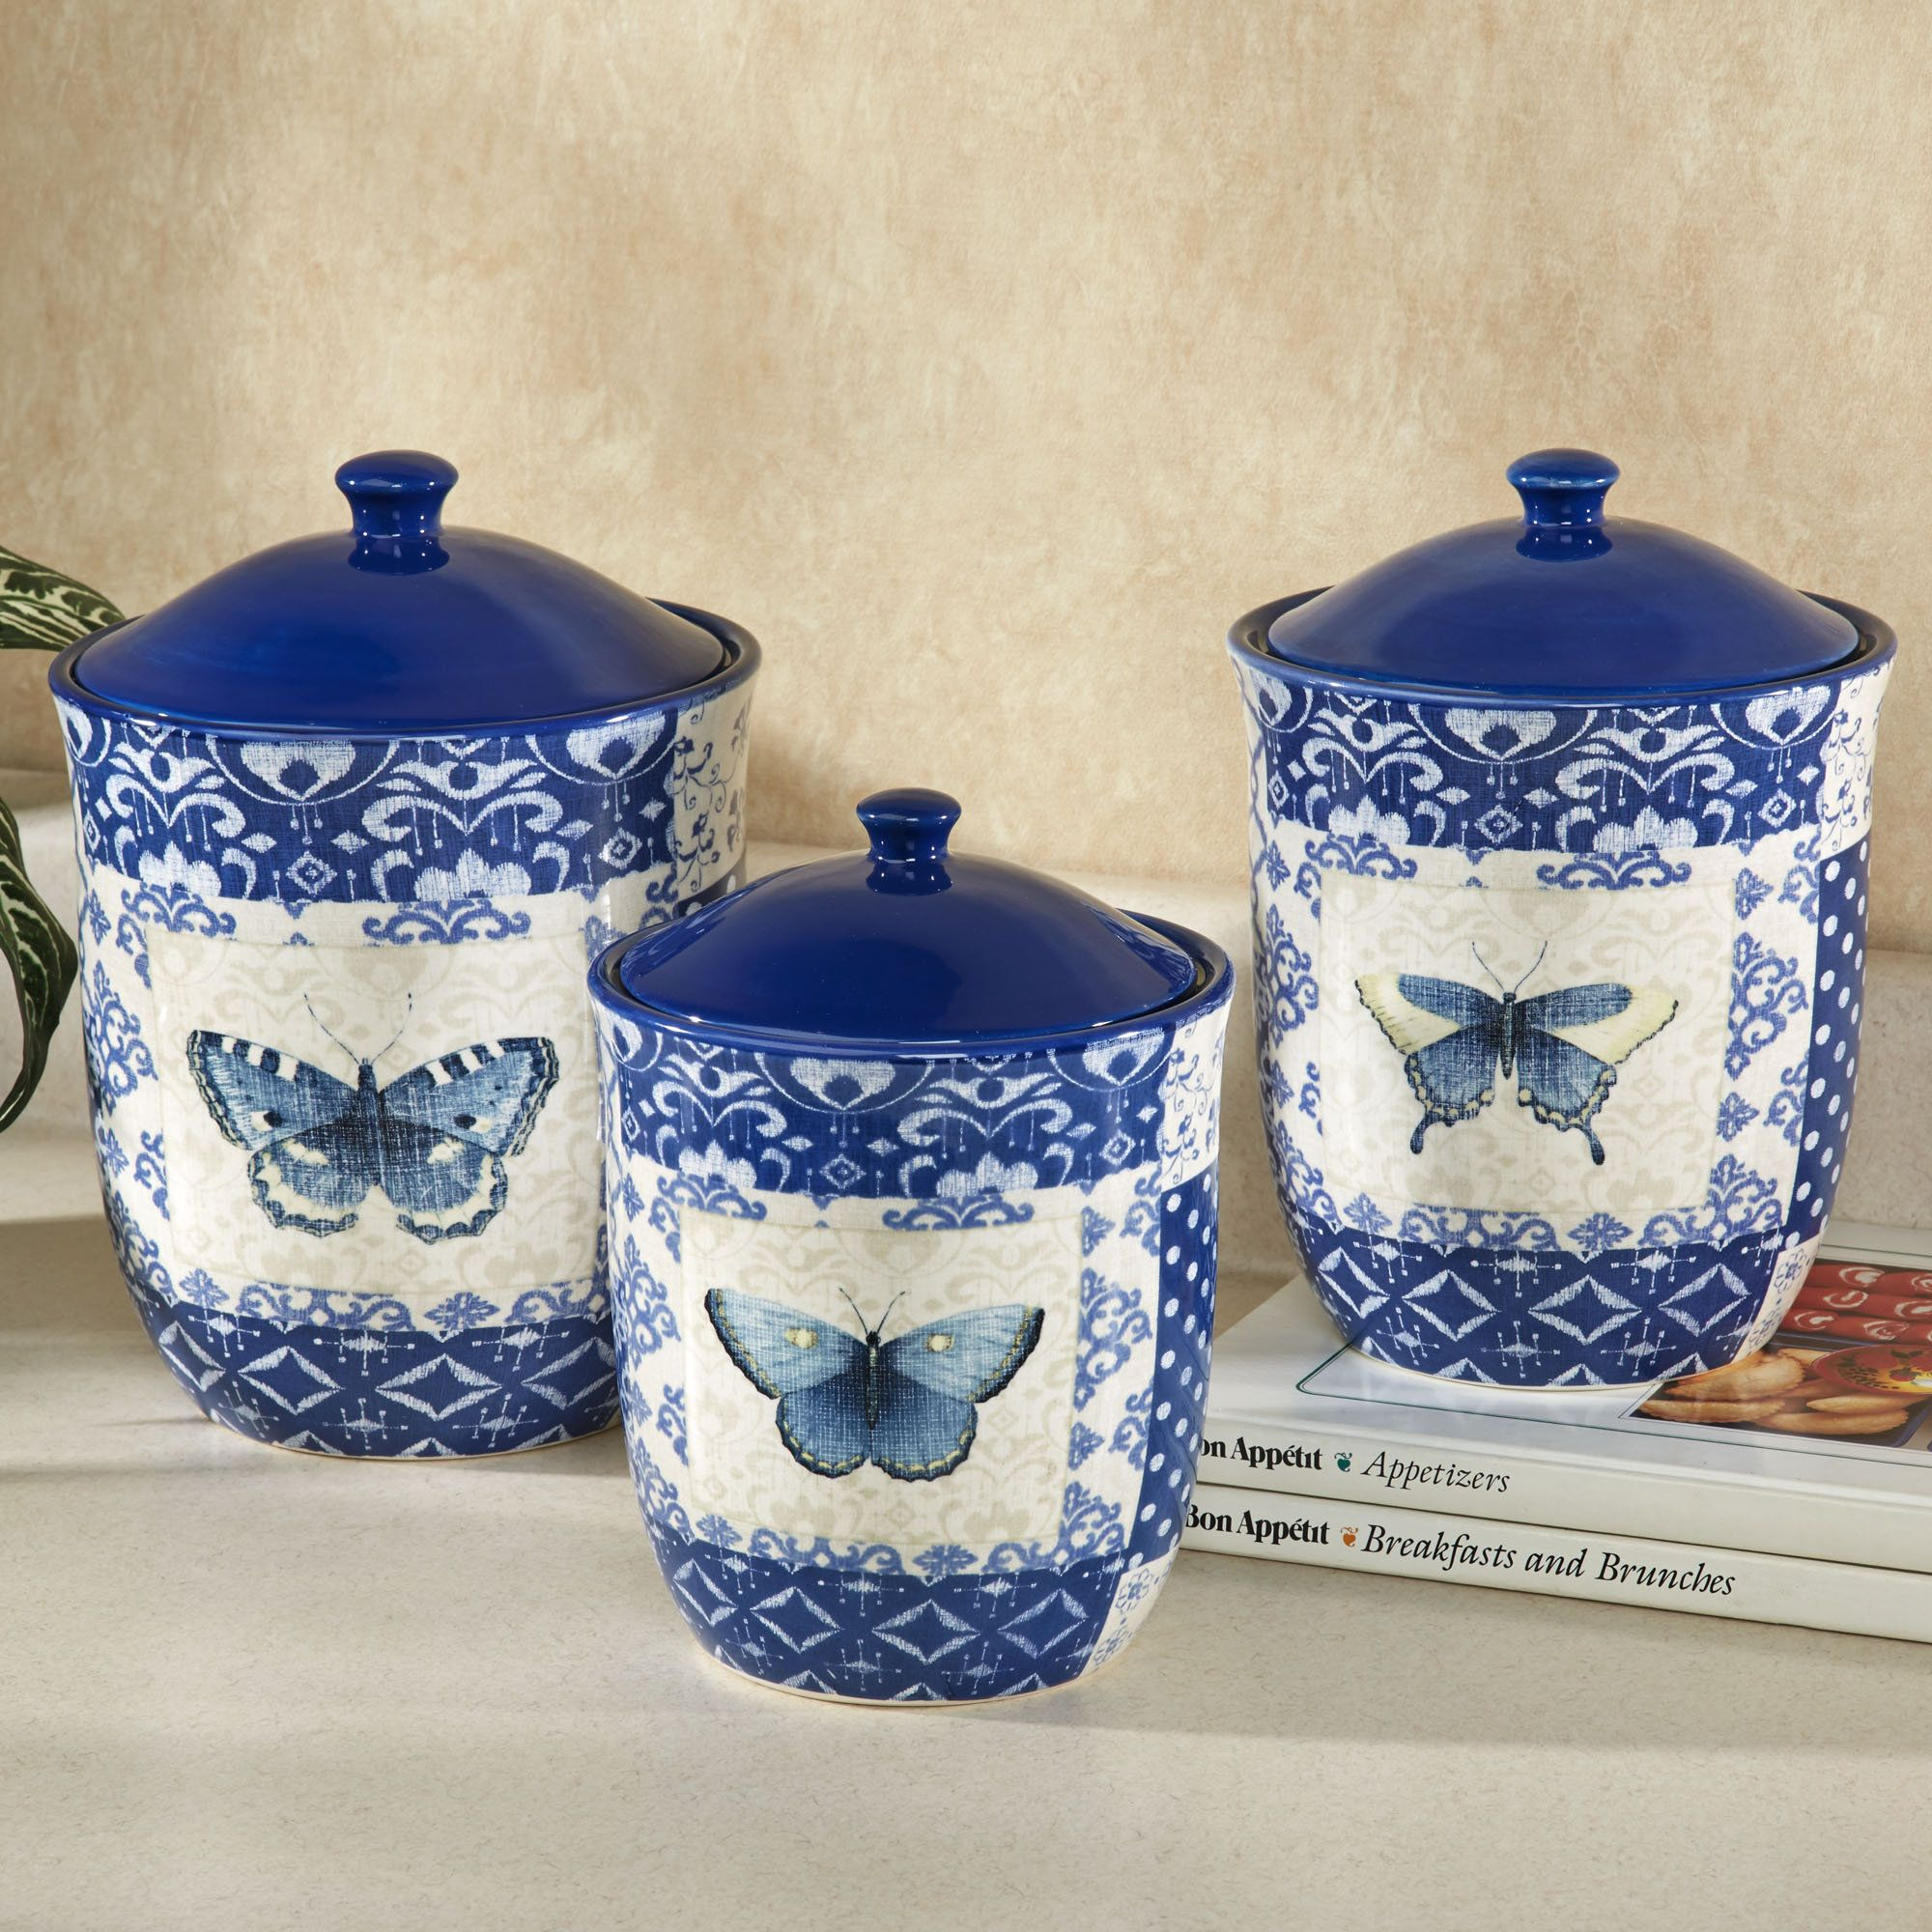 Indigo Nature Butterfly Kitchen Canister Set Kitchen Canisters Kitchen Canister Sets Kitchen Decor